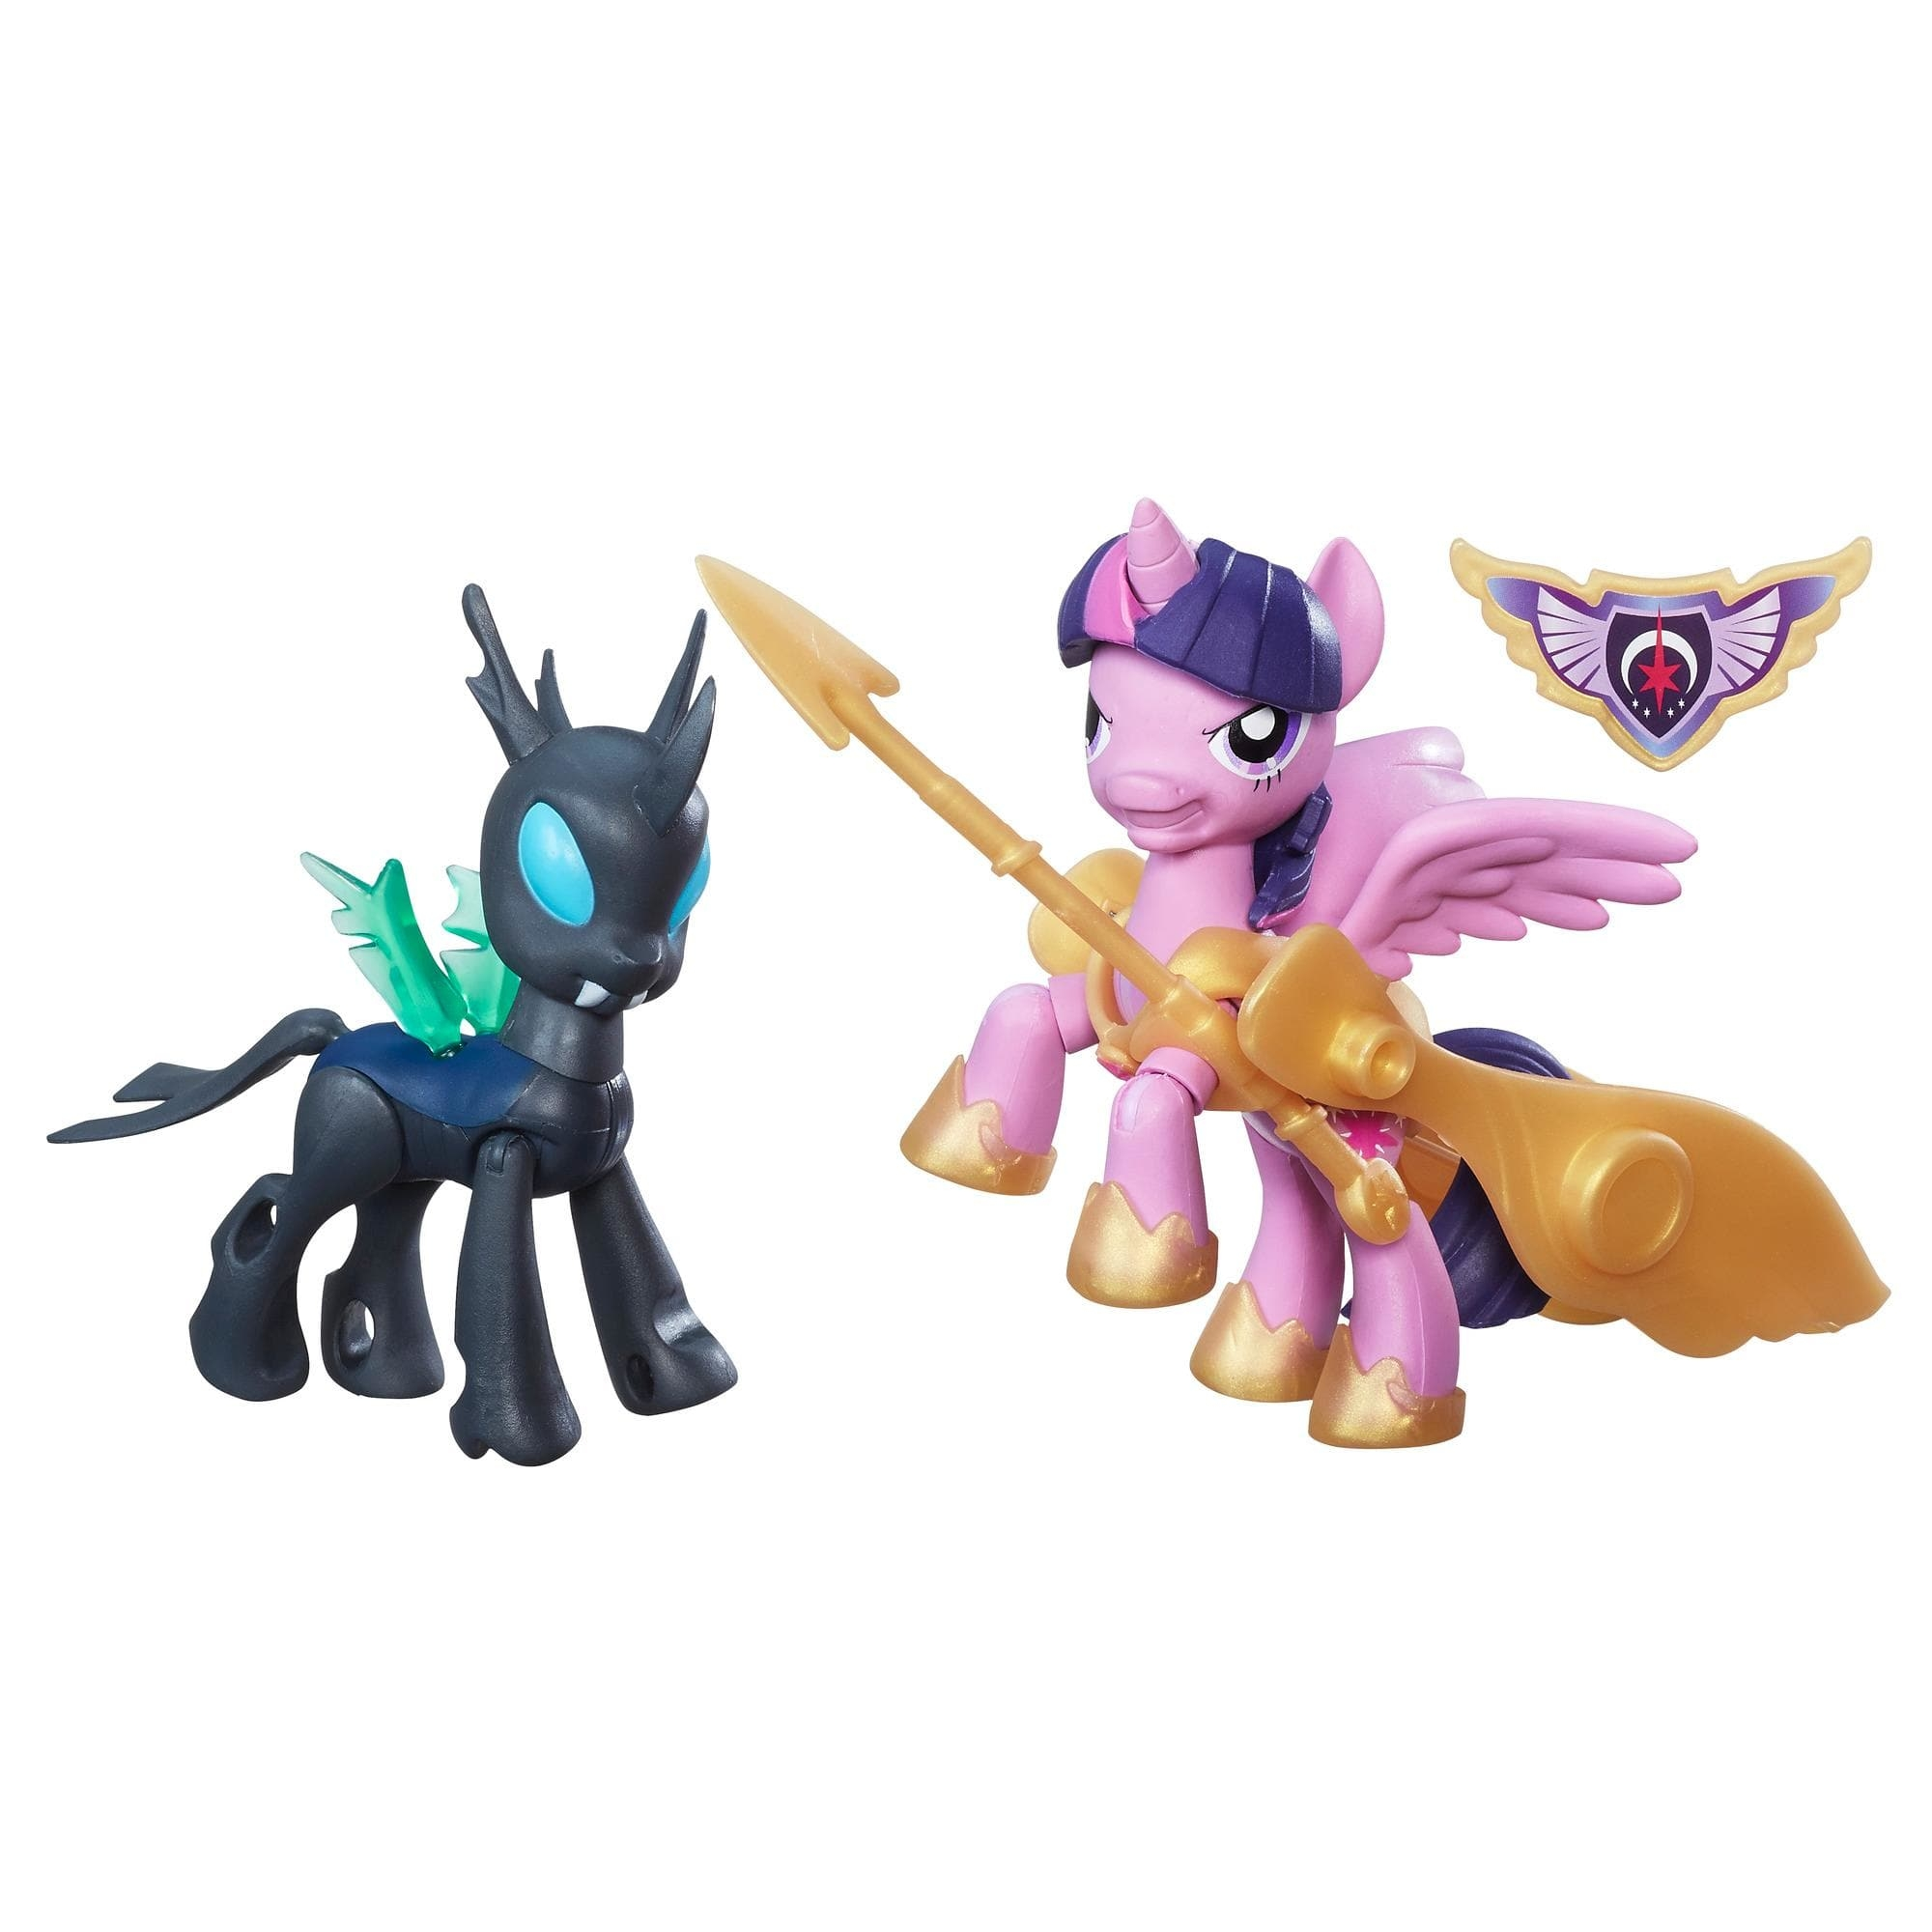 Figurine My Little Pony Gardienii Armoniei - Princess Twilight Sparkle si Changeling